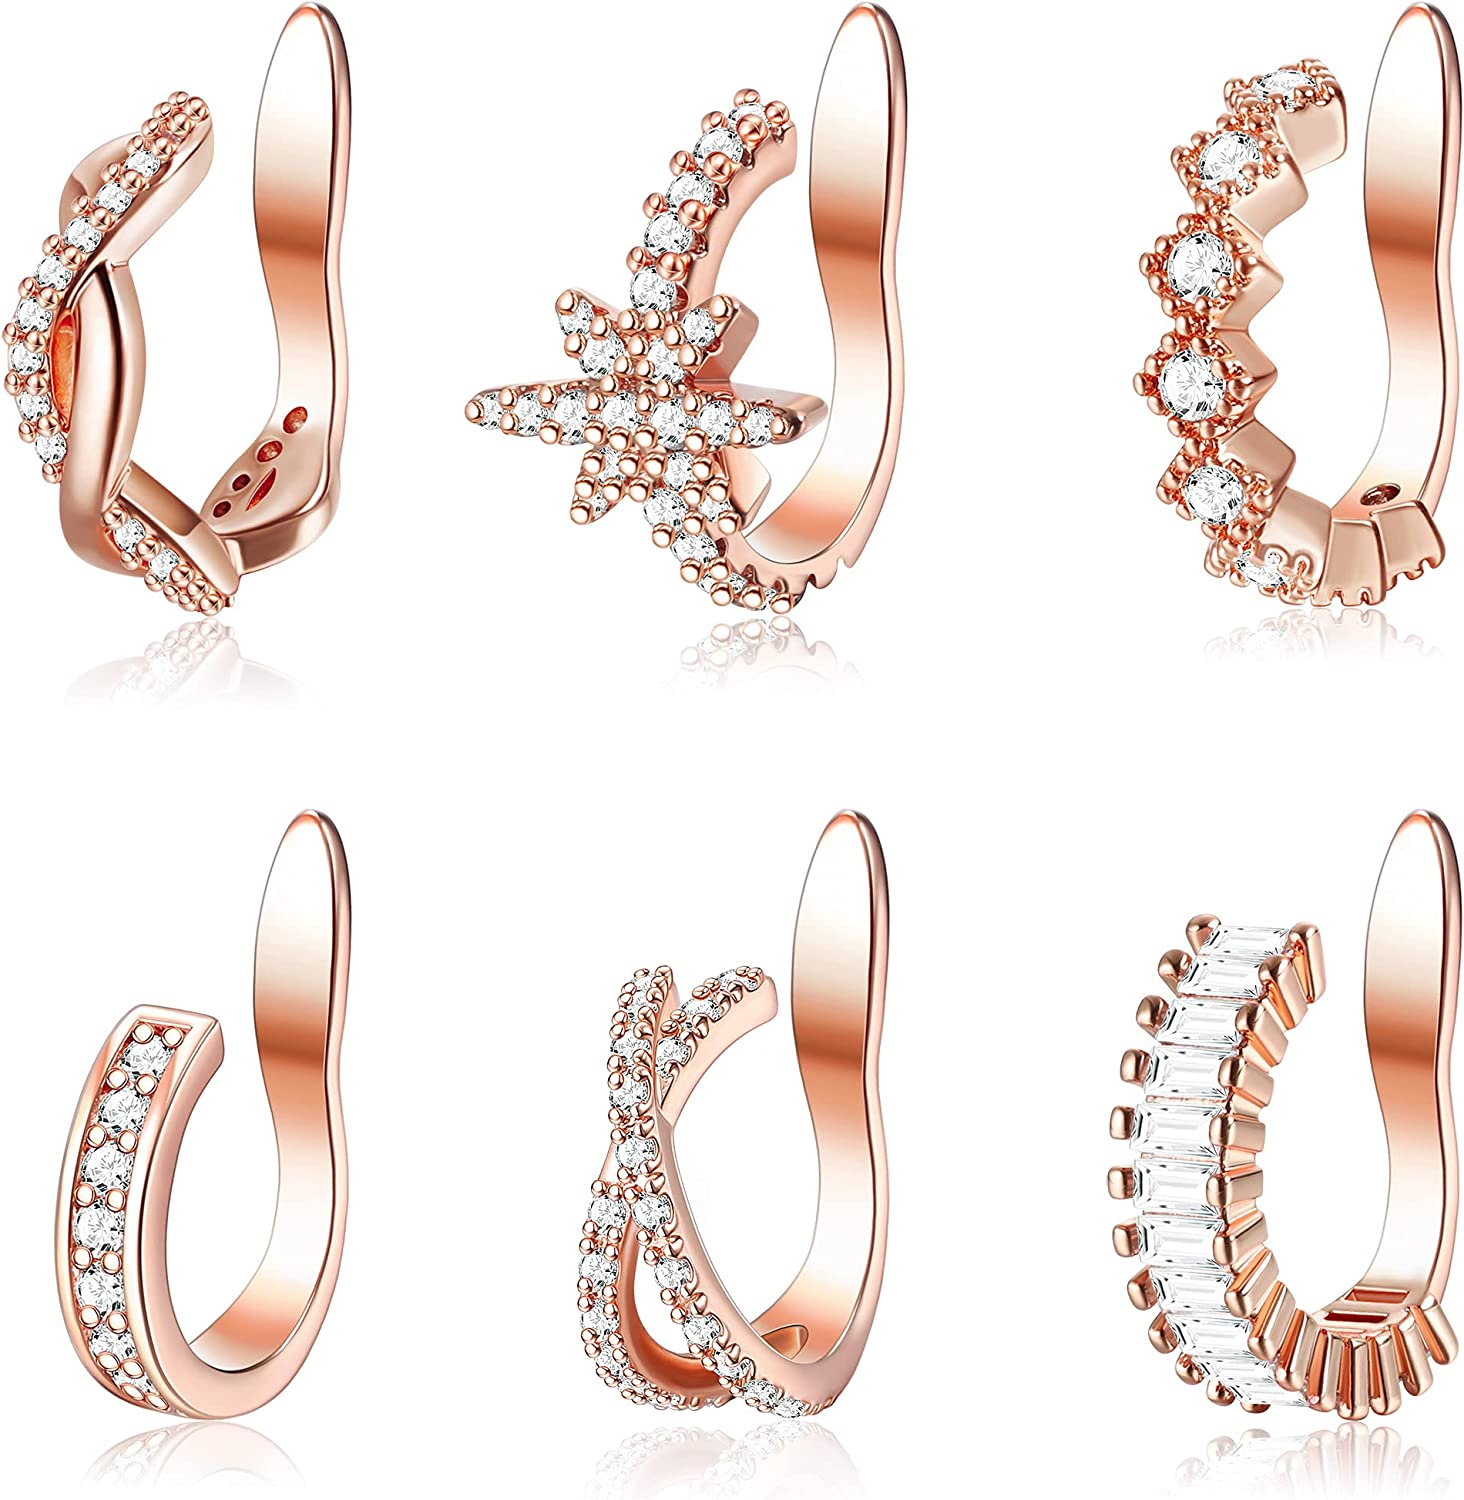 XCOIN 6 pcs Mesa Mall Ear Cuff Set Dainty Cartilage Helix Sp Earrings Price reduction